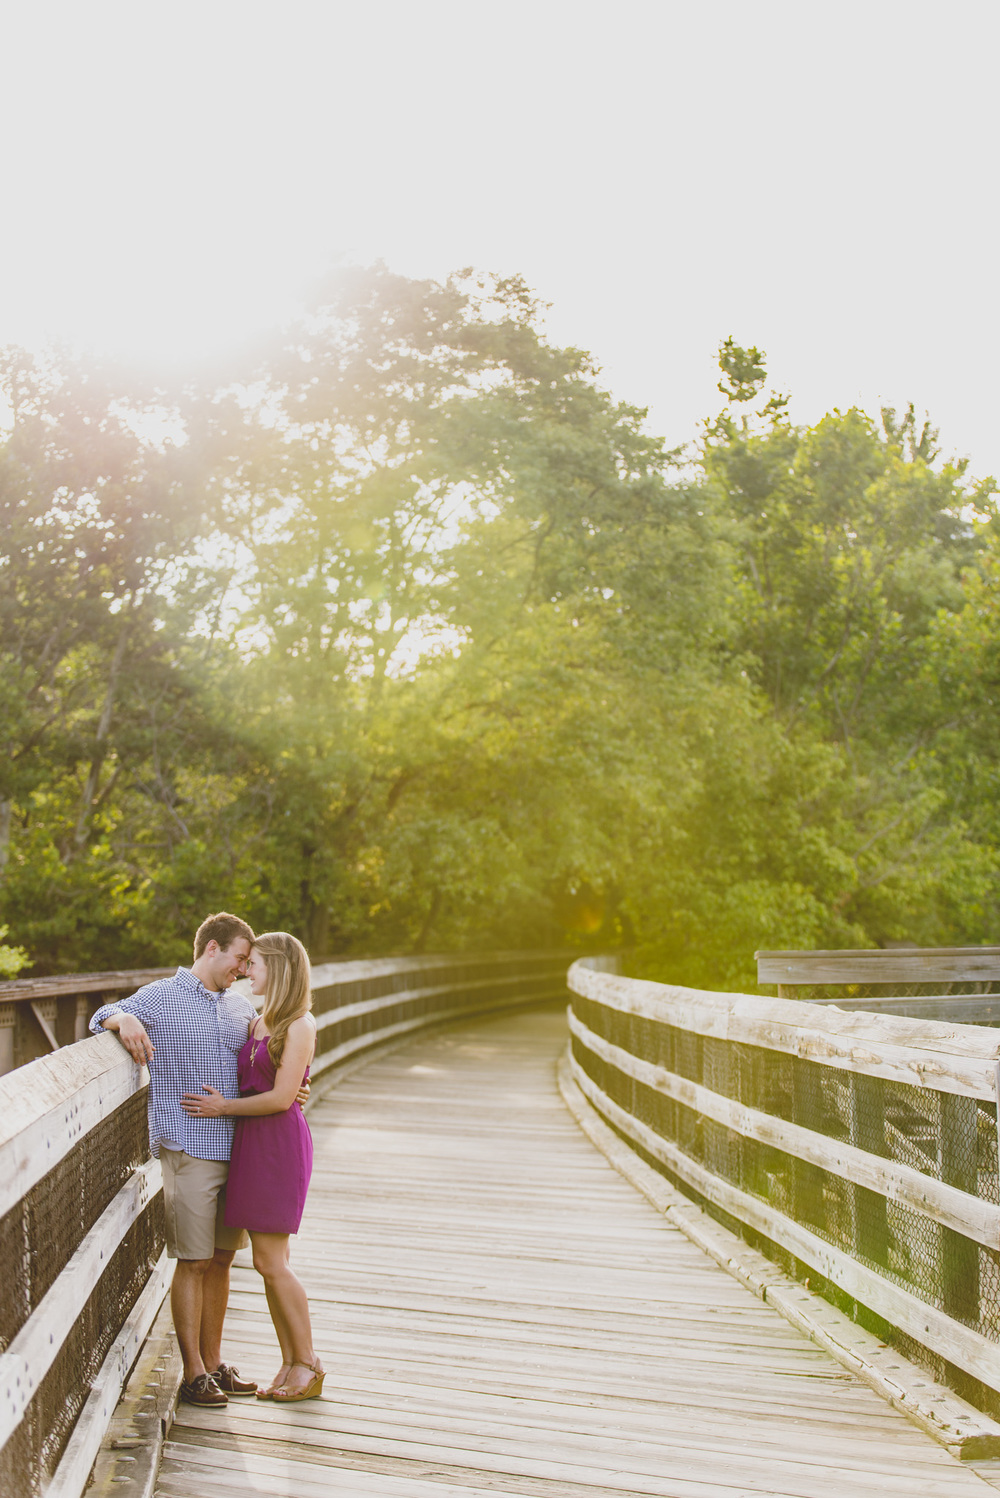 Downtown_Lynchburg_VA_craddock_Terry_Water_Fountain_Engagement_Session_Photos283.jpg